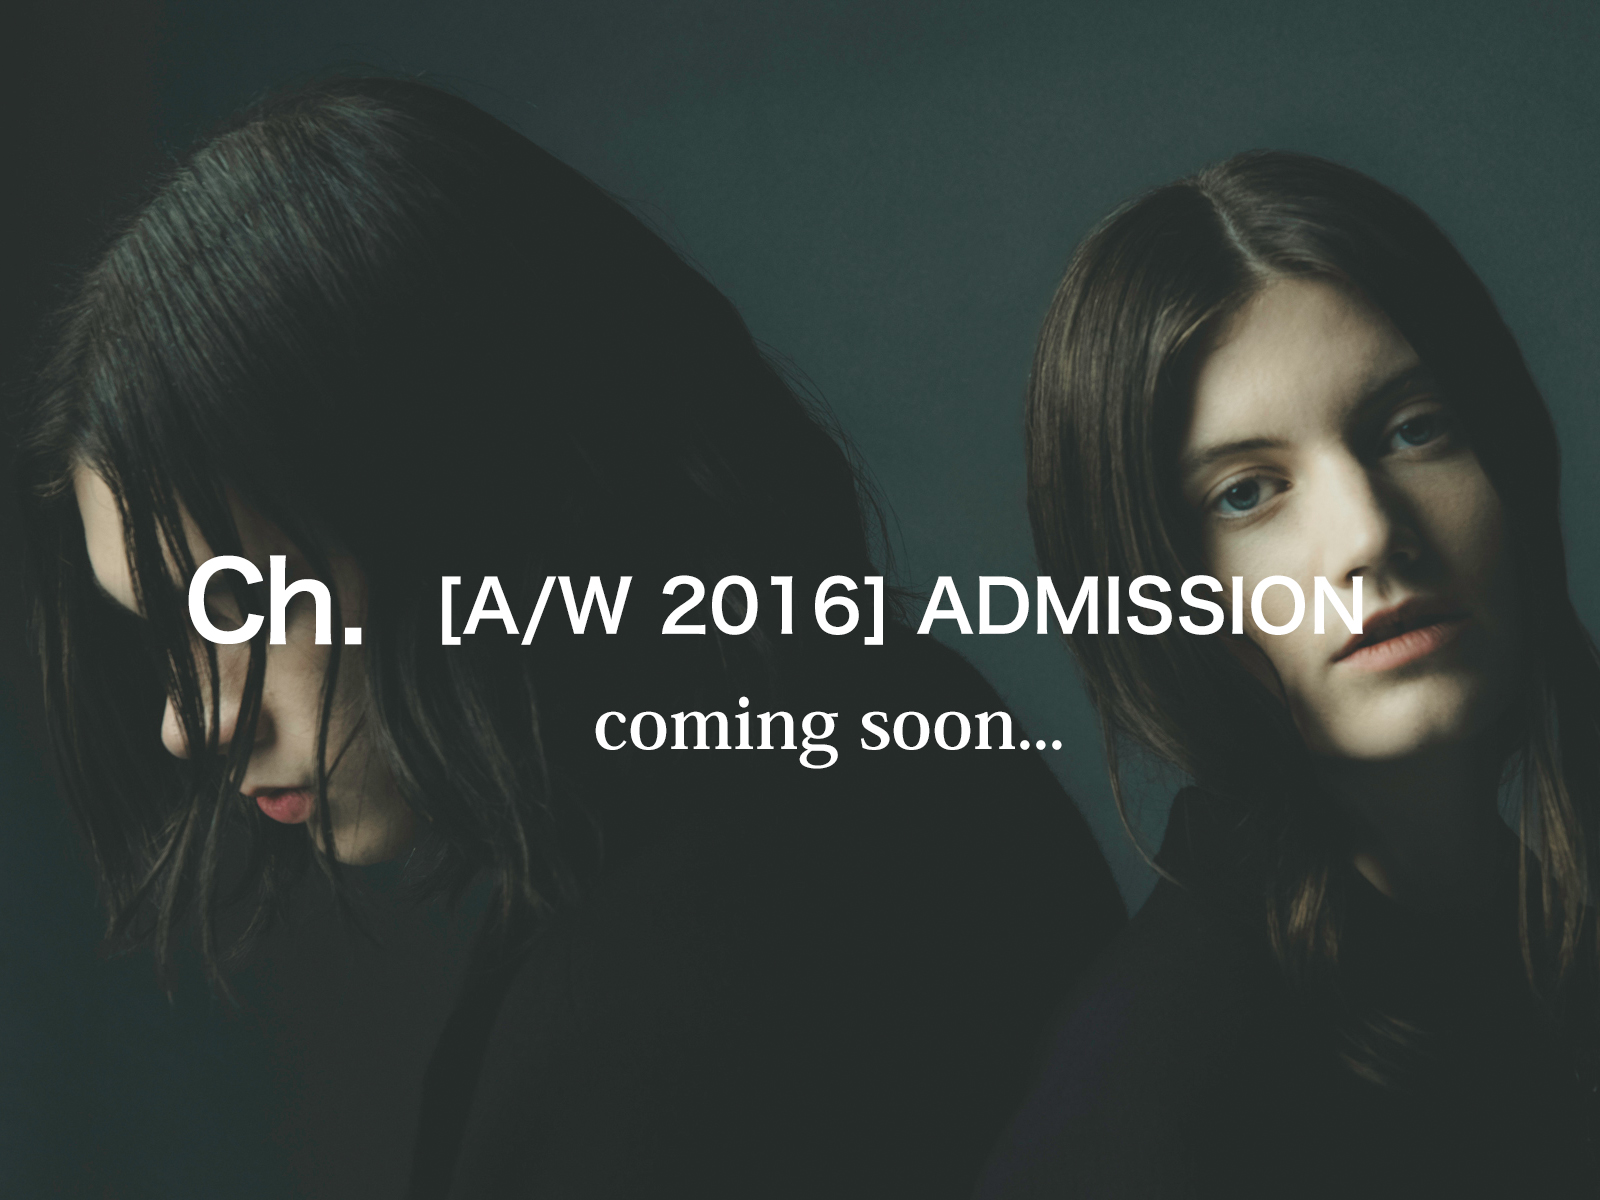 CHAPTER [A/W 2016] ADMISSION coming soon…